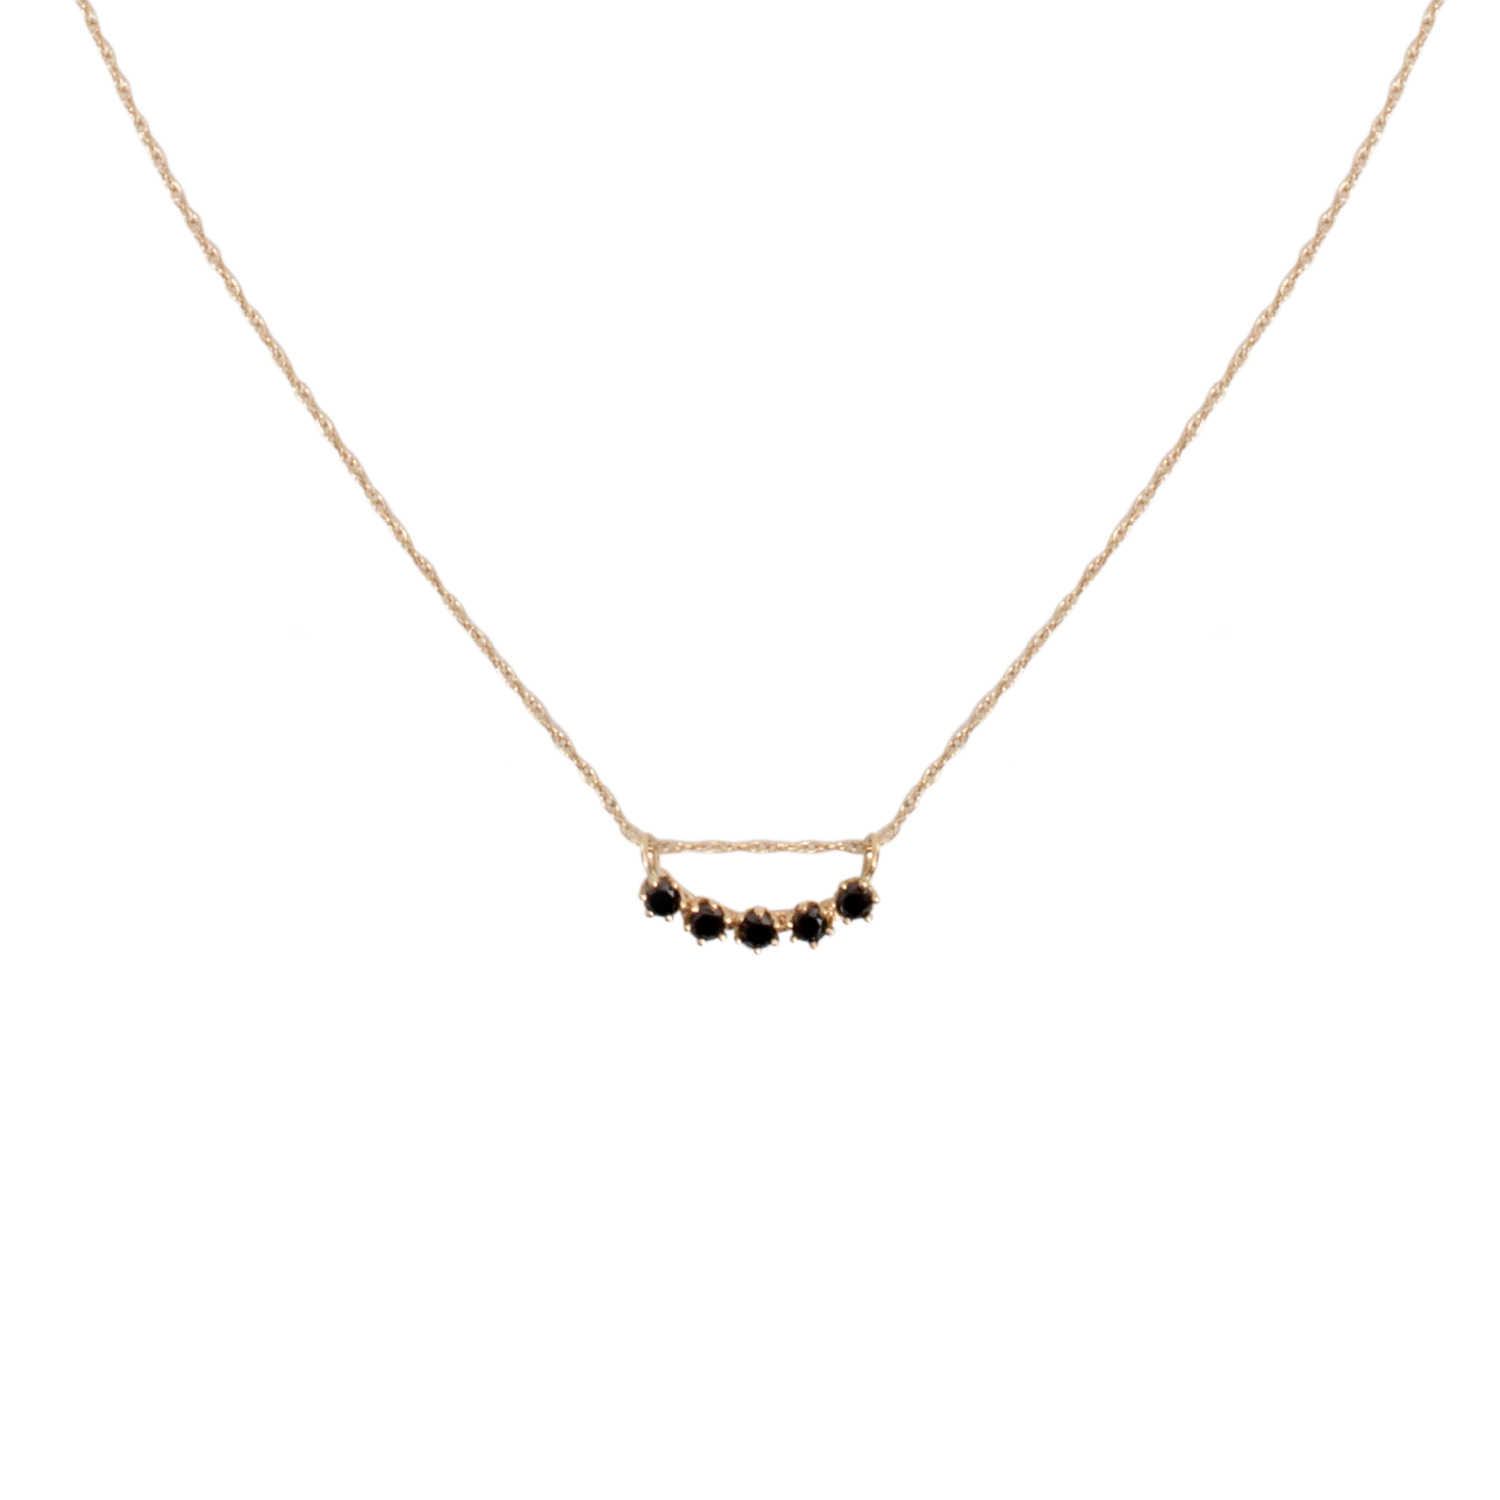 ah black sb necklace by magdalena bg diamond m products san and vsa necklaces collections designs gold benito